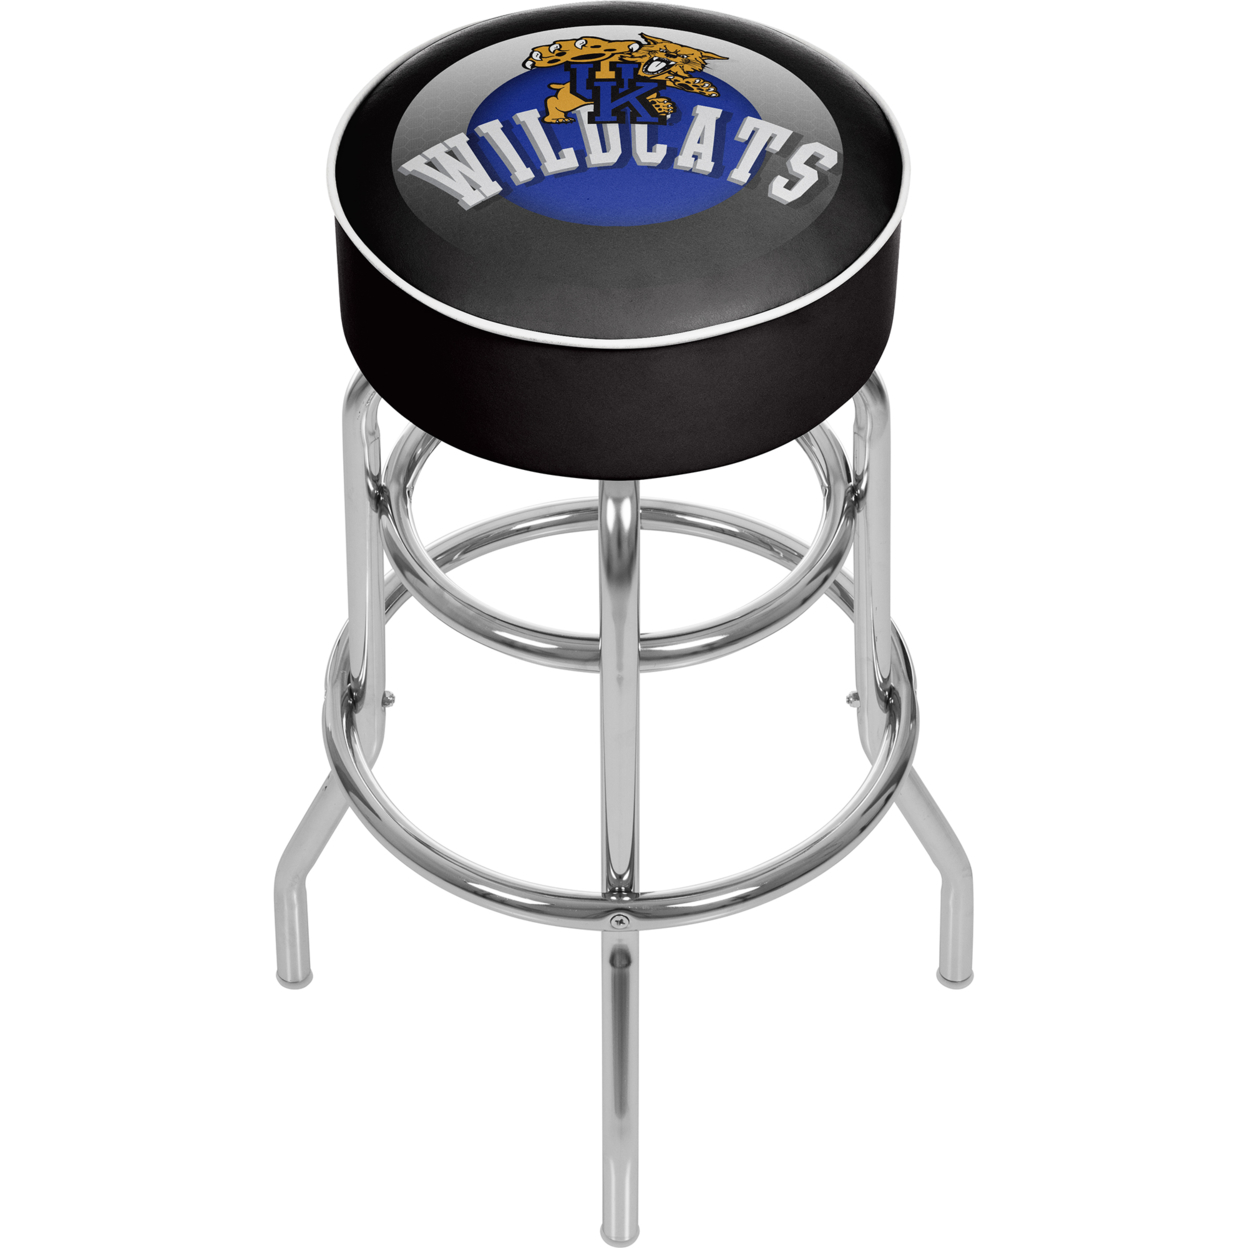 University of Kentucky Wildcats Honeycomb Padded Swivel Bar Stool 30 Inches High